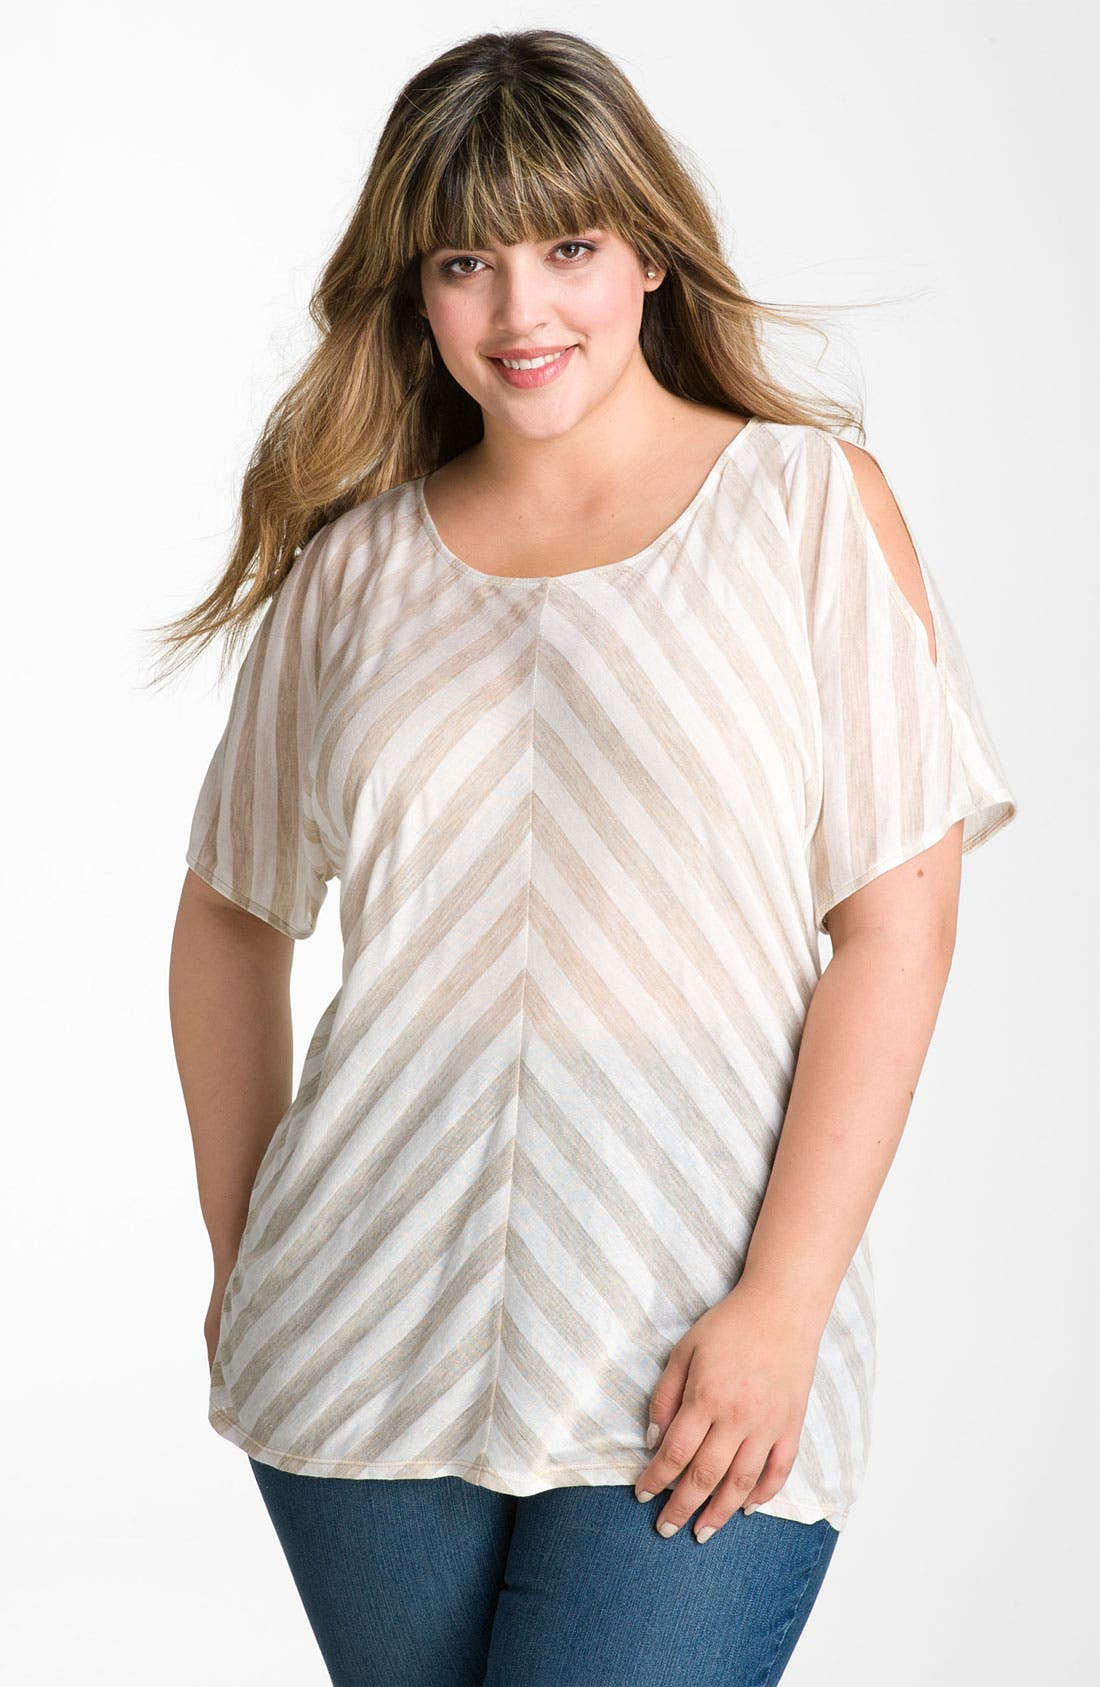 Alternate Image 1 Selected - Gibson Stripe Cold Shoulder Top (Plus)